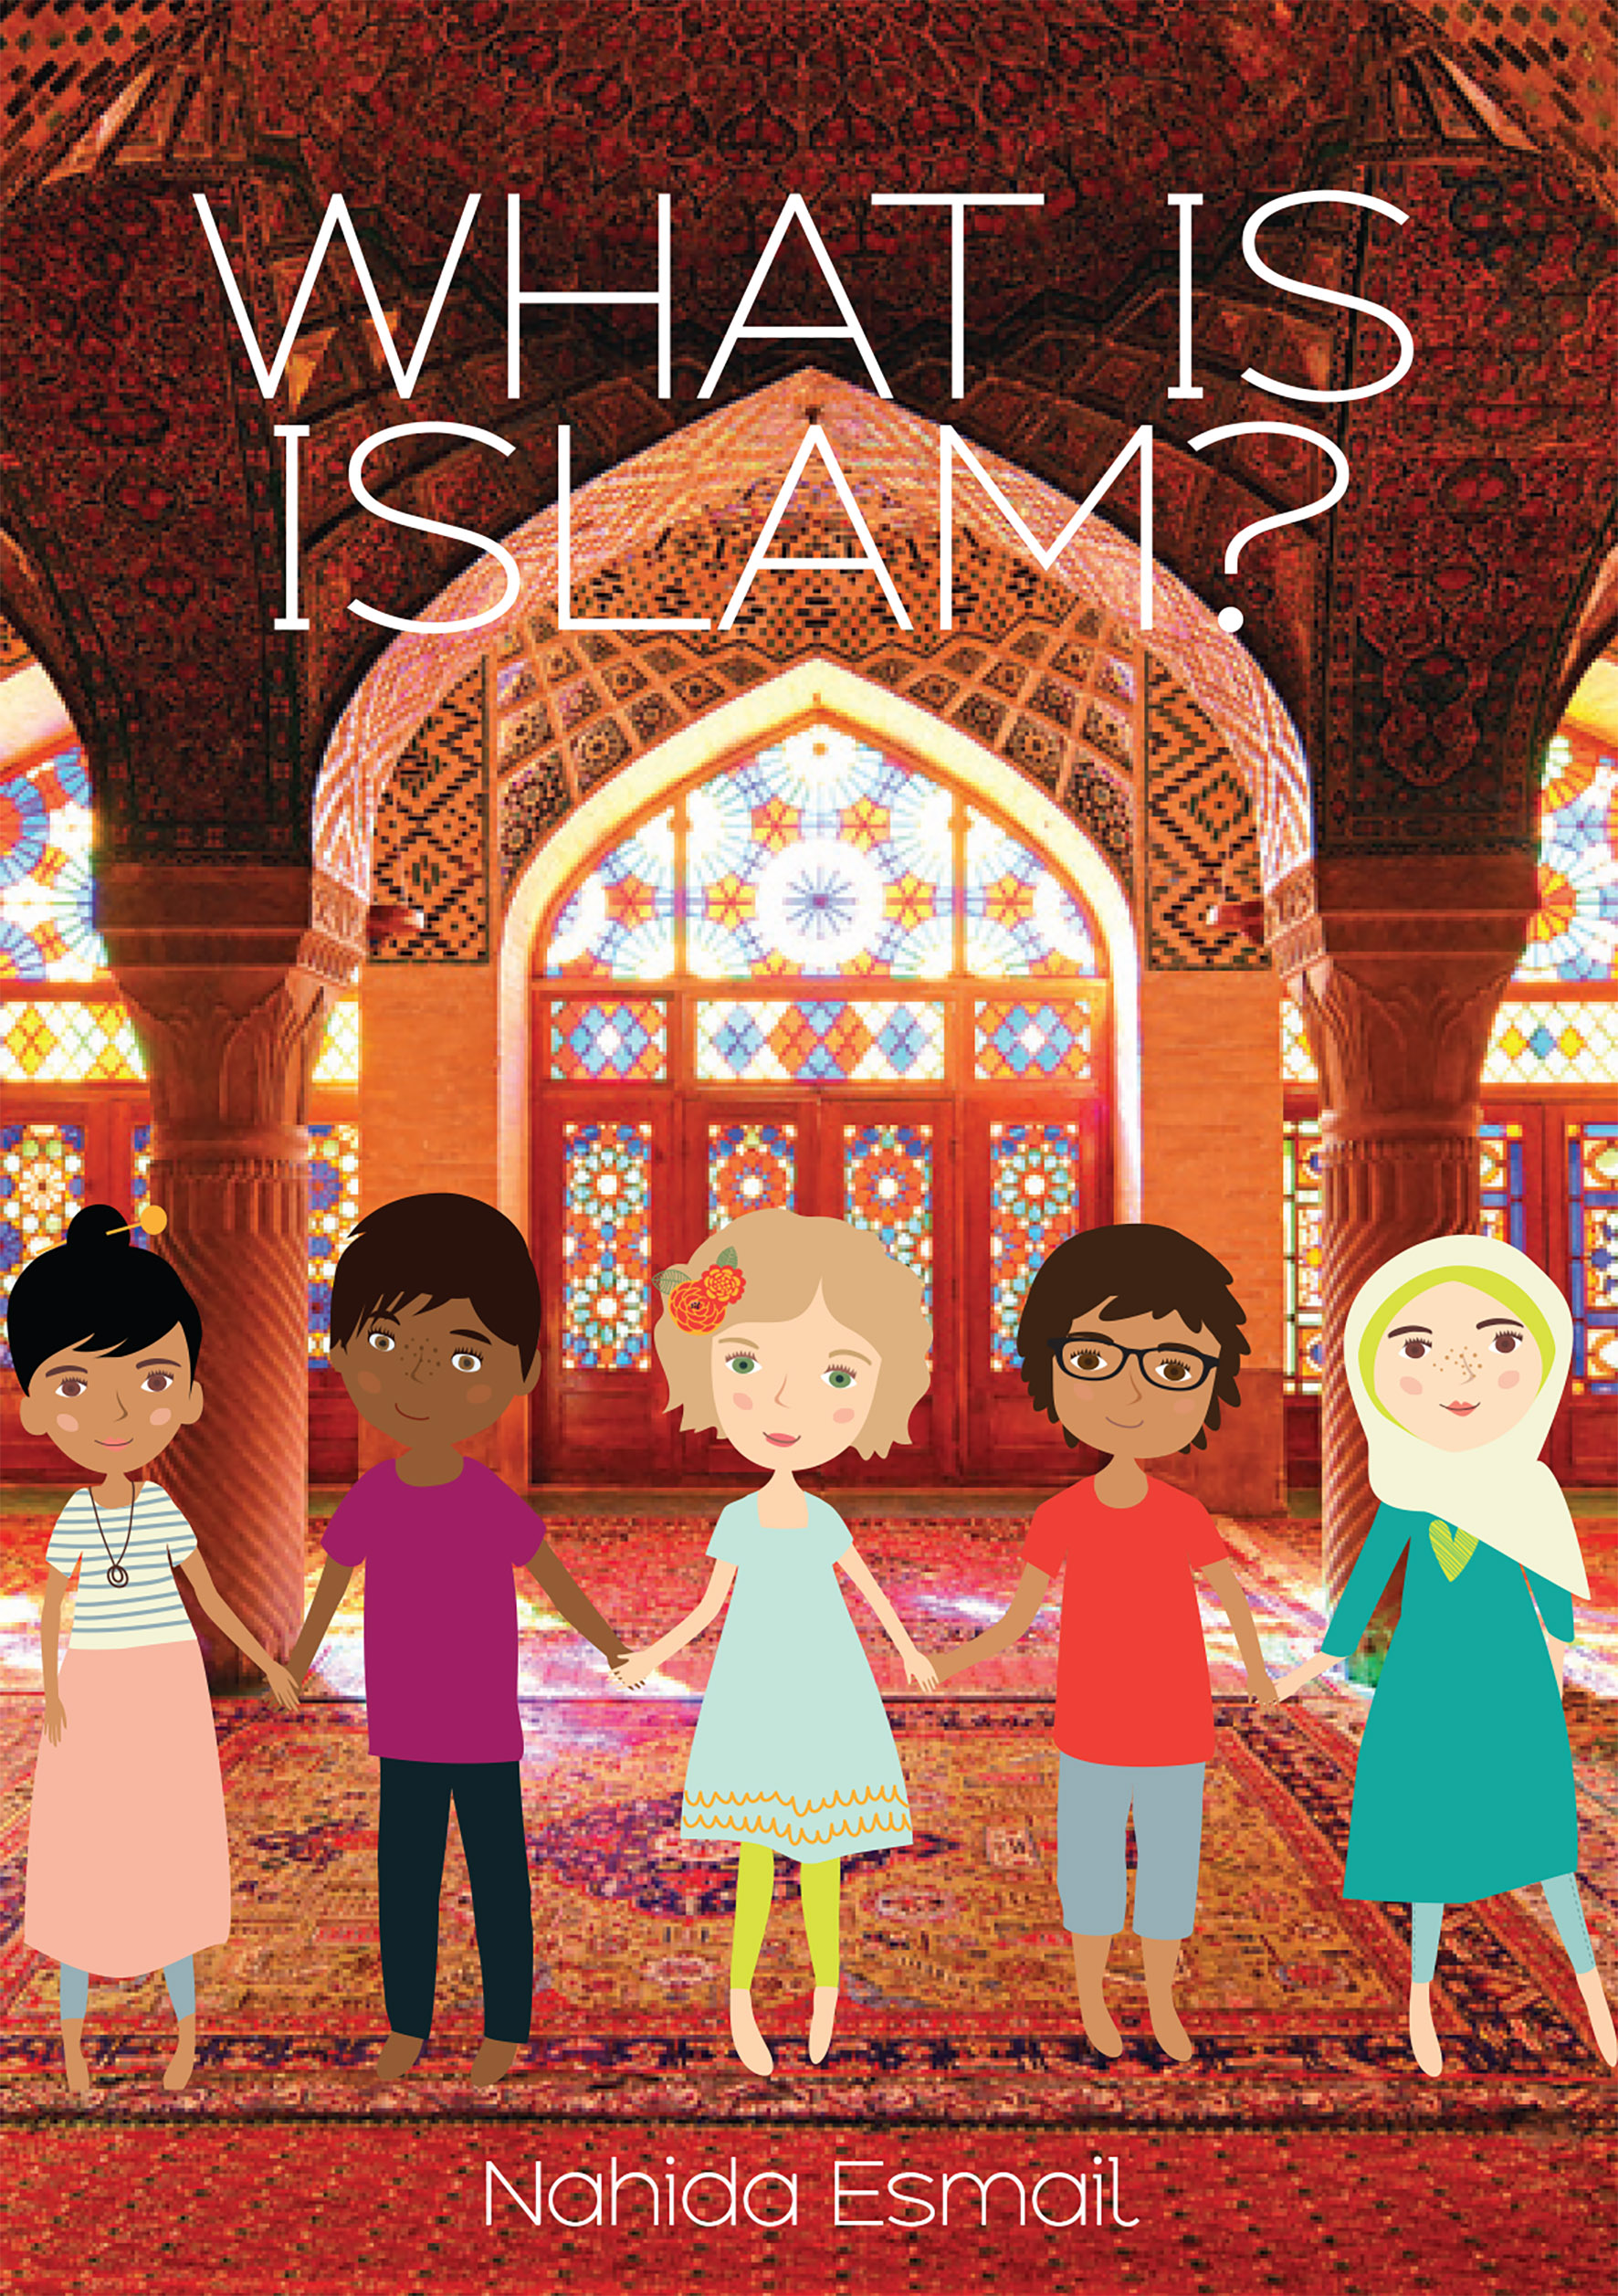 - What is Islam is a simplified presentation of the religion of Islam for young people. It explains the fundamental teachings of Islam and focuses on the many similarities between Christianity and Islam. The goal of this book is to remove common misunderstandings about Islam and its teachings.